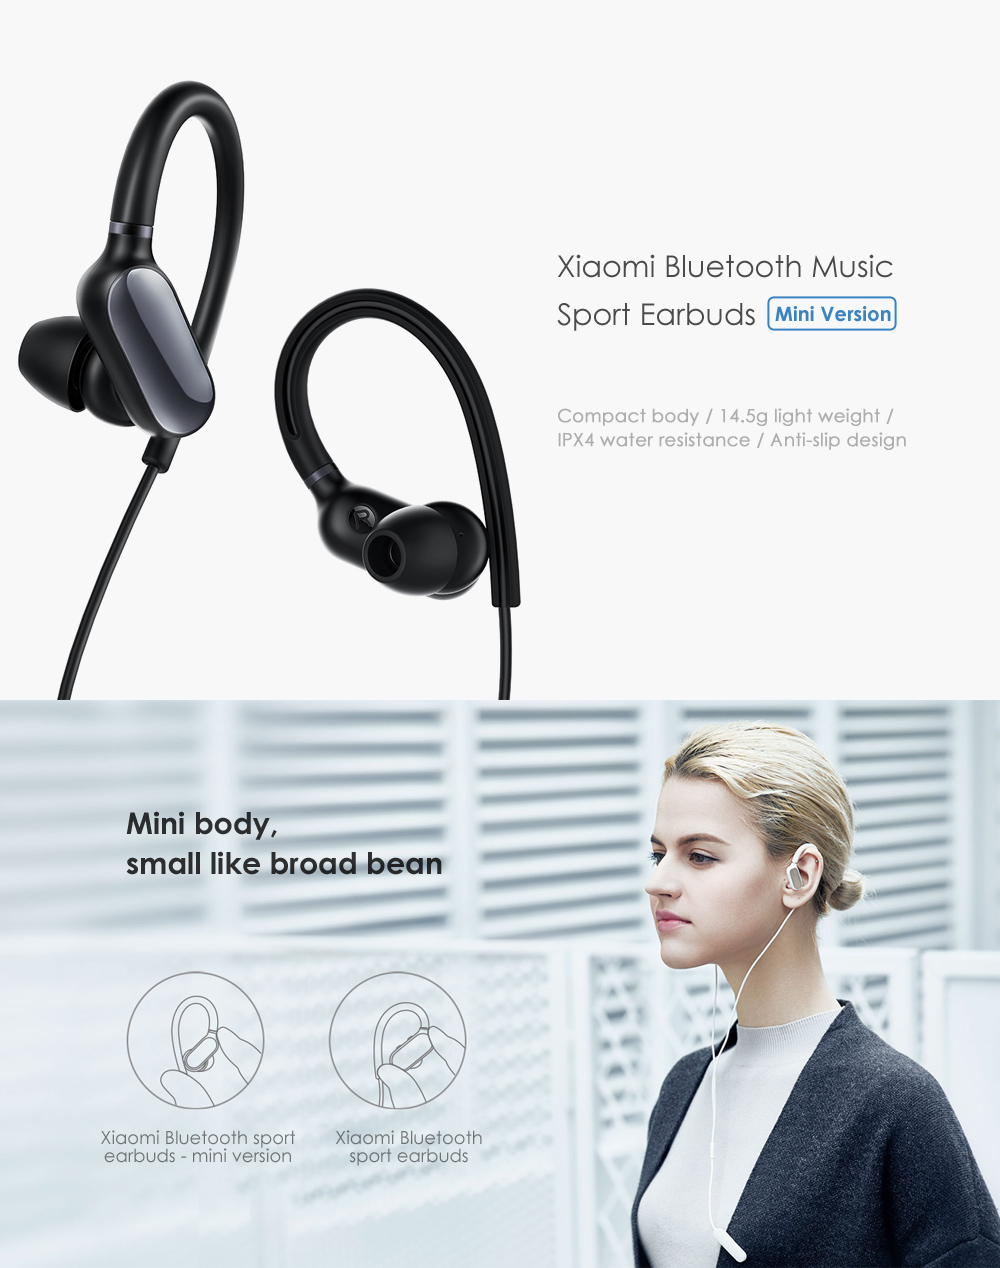 Original Xiaomi Wireless Stereo Music Bluetooth Sport Earbuds with Mic - Mini Version- Black